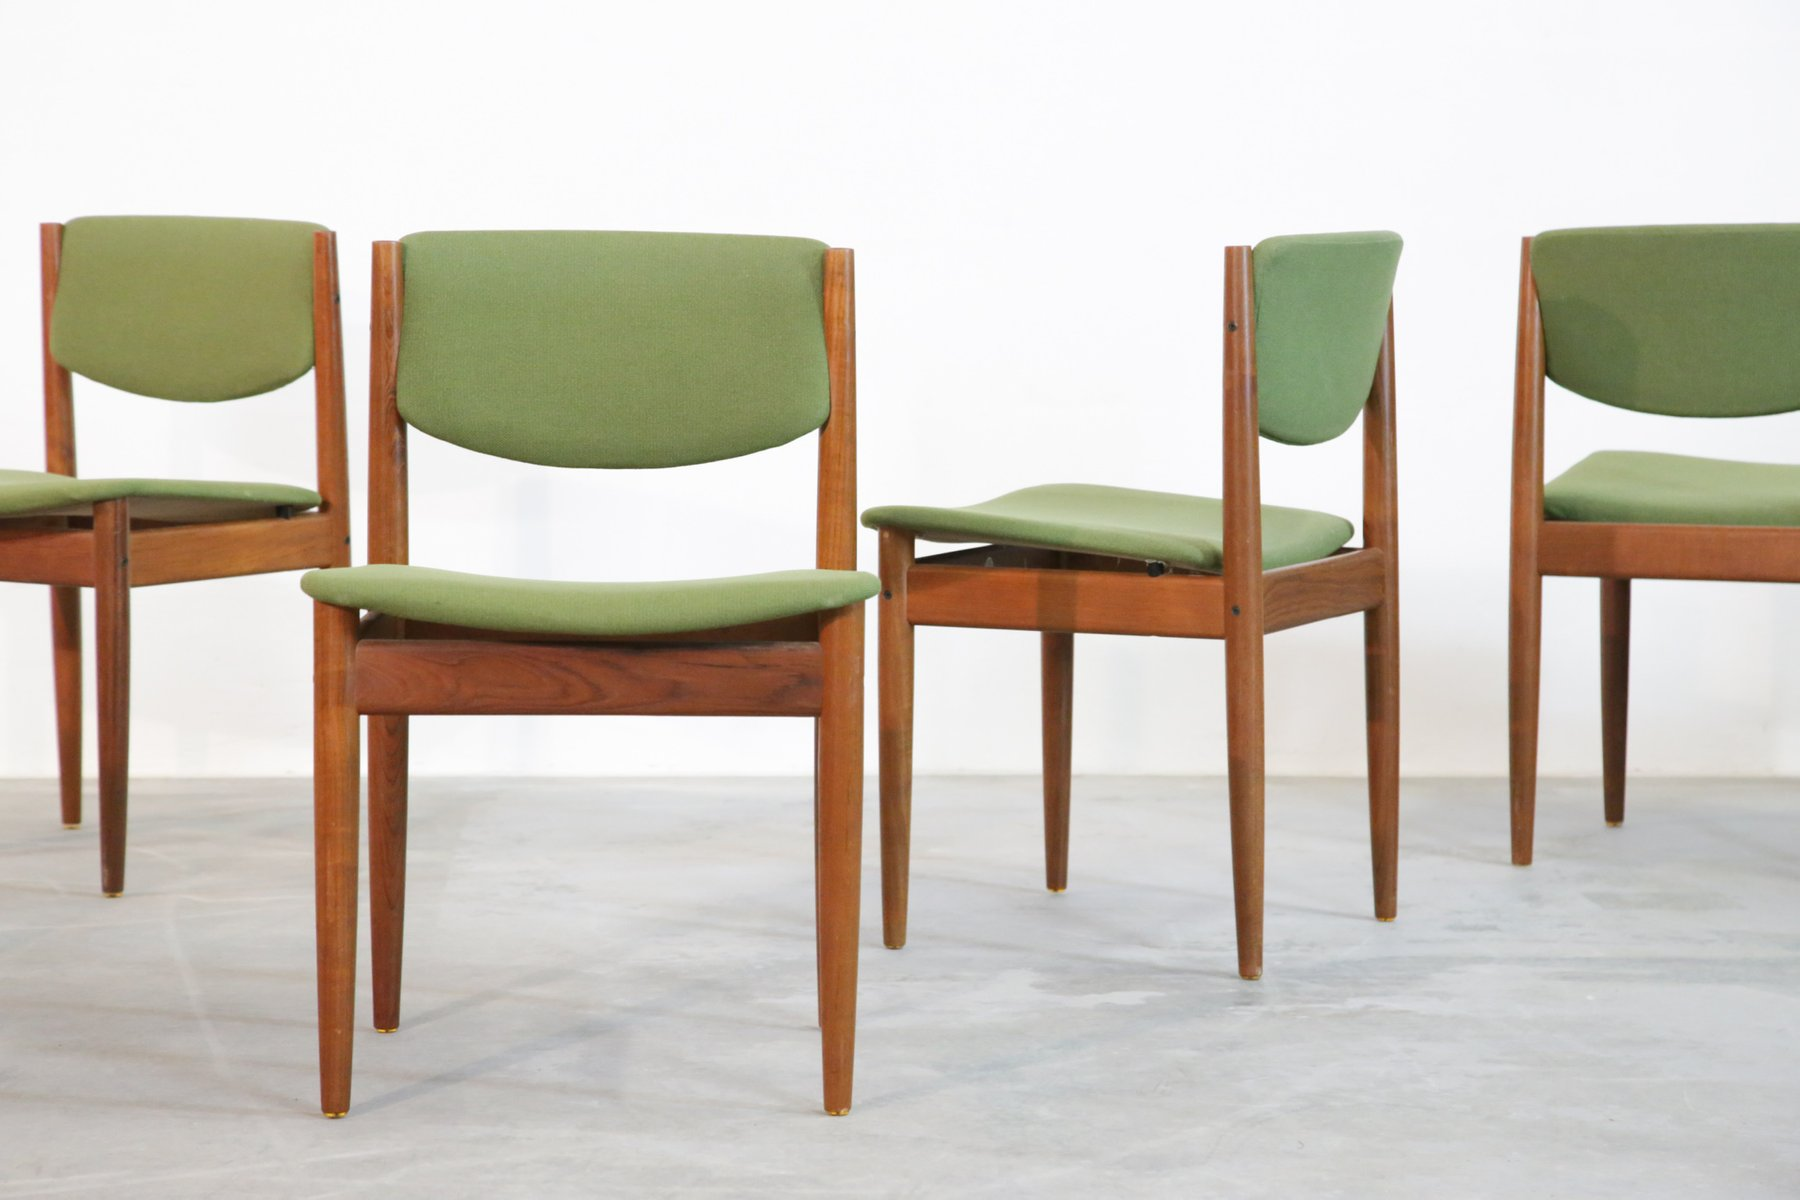 Danish Chairs Danish Dining Chairs By Finn Juhl For France And Søn 1960s